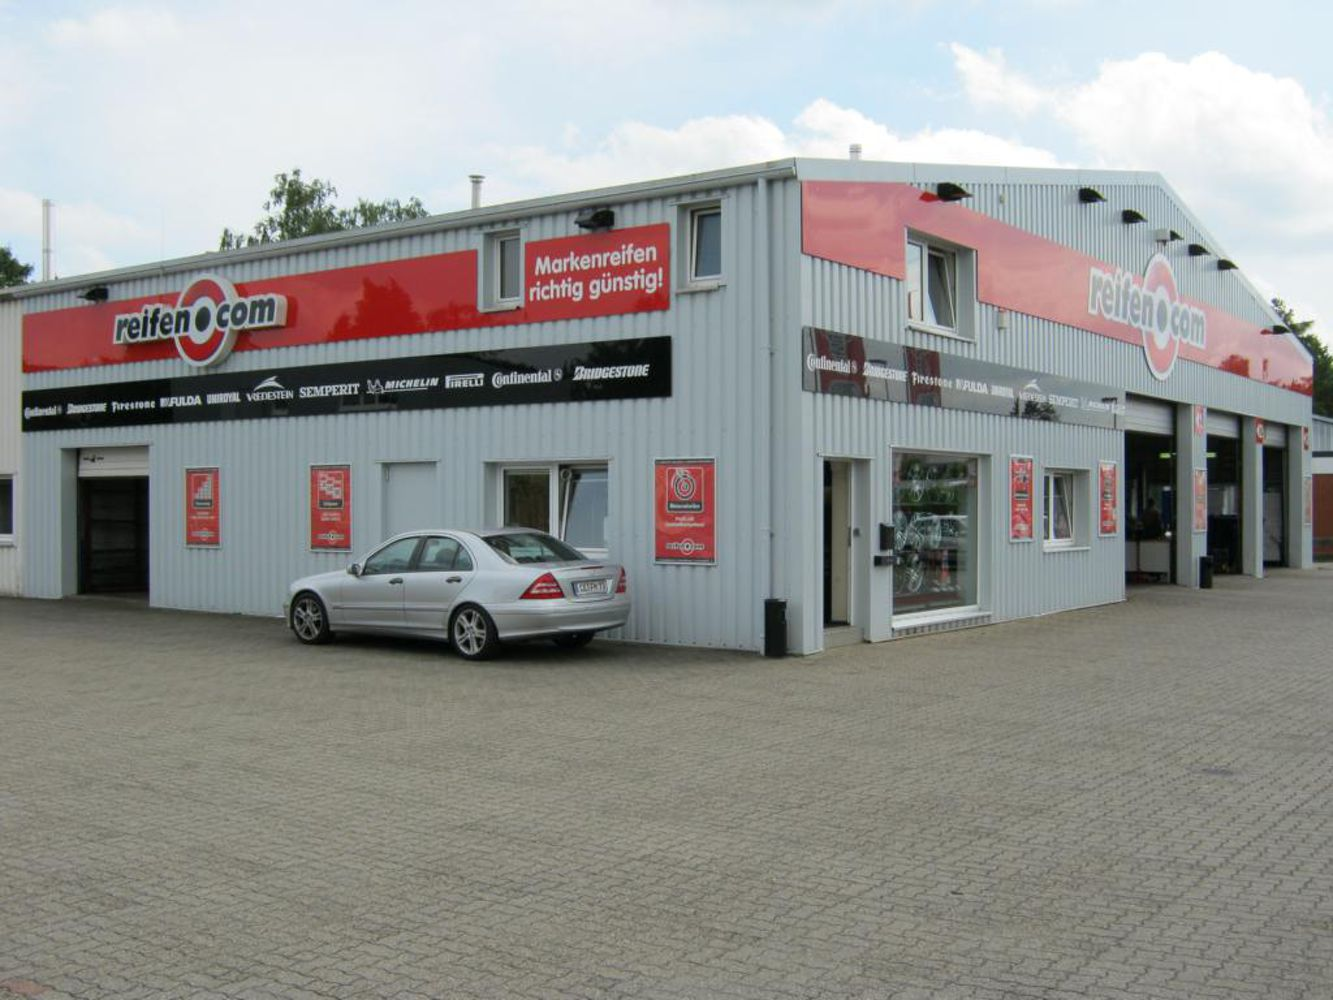 reifen.com-branch in Celle